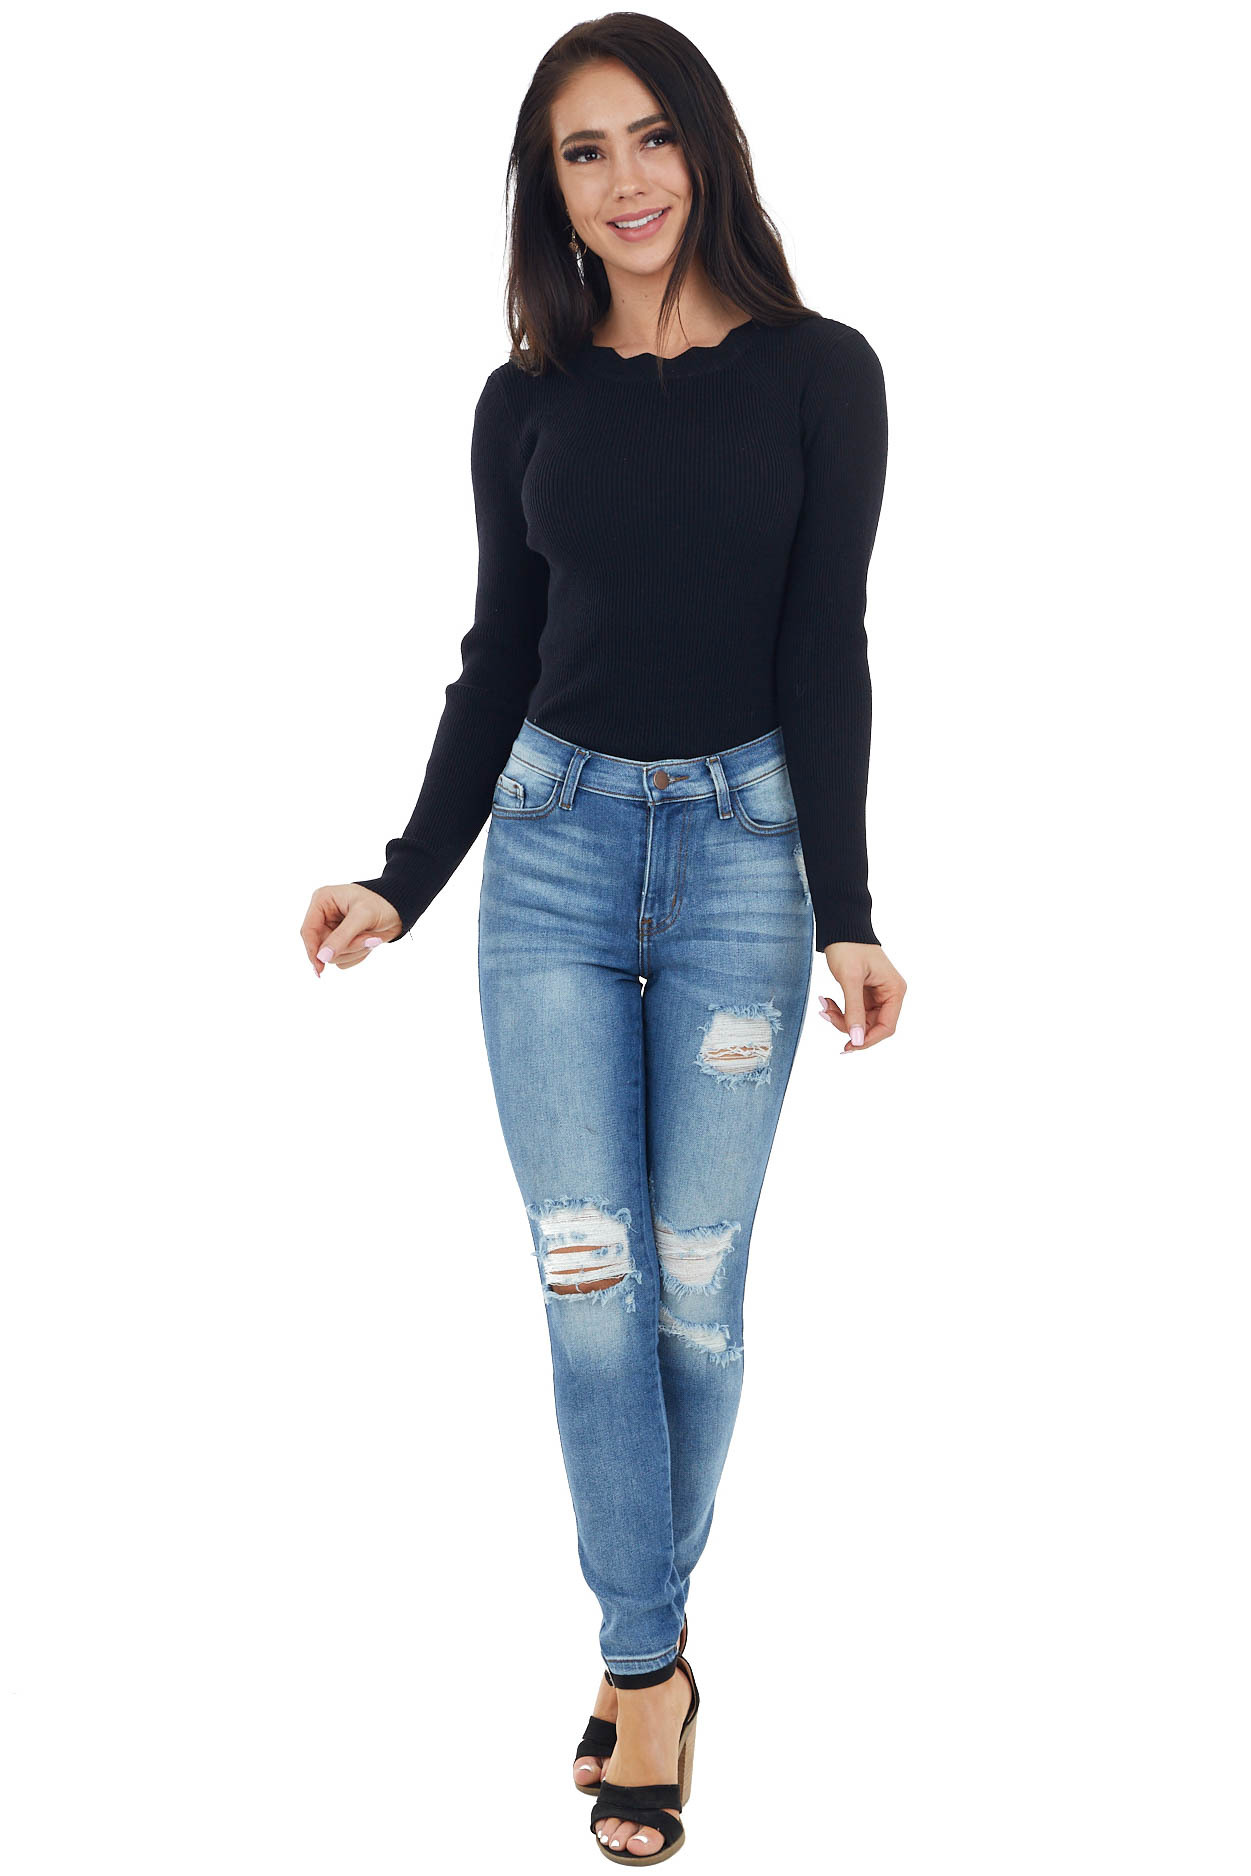 Black Ribbed Knit Bodysuit with Scalloped Neckline